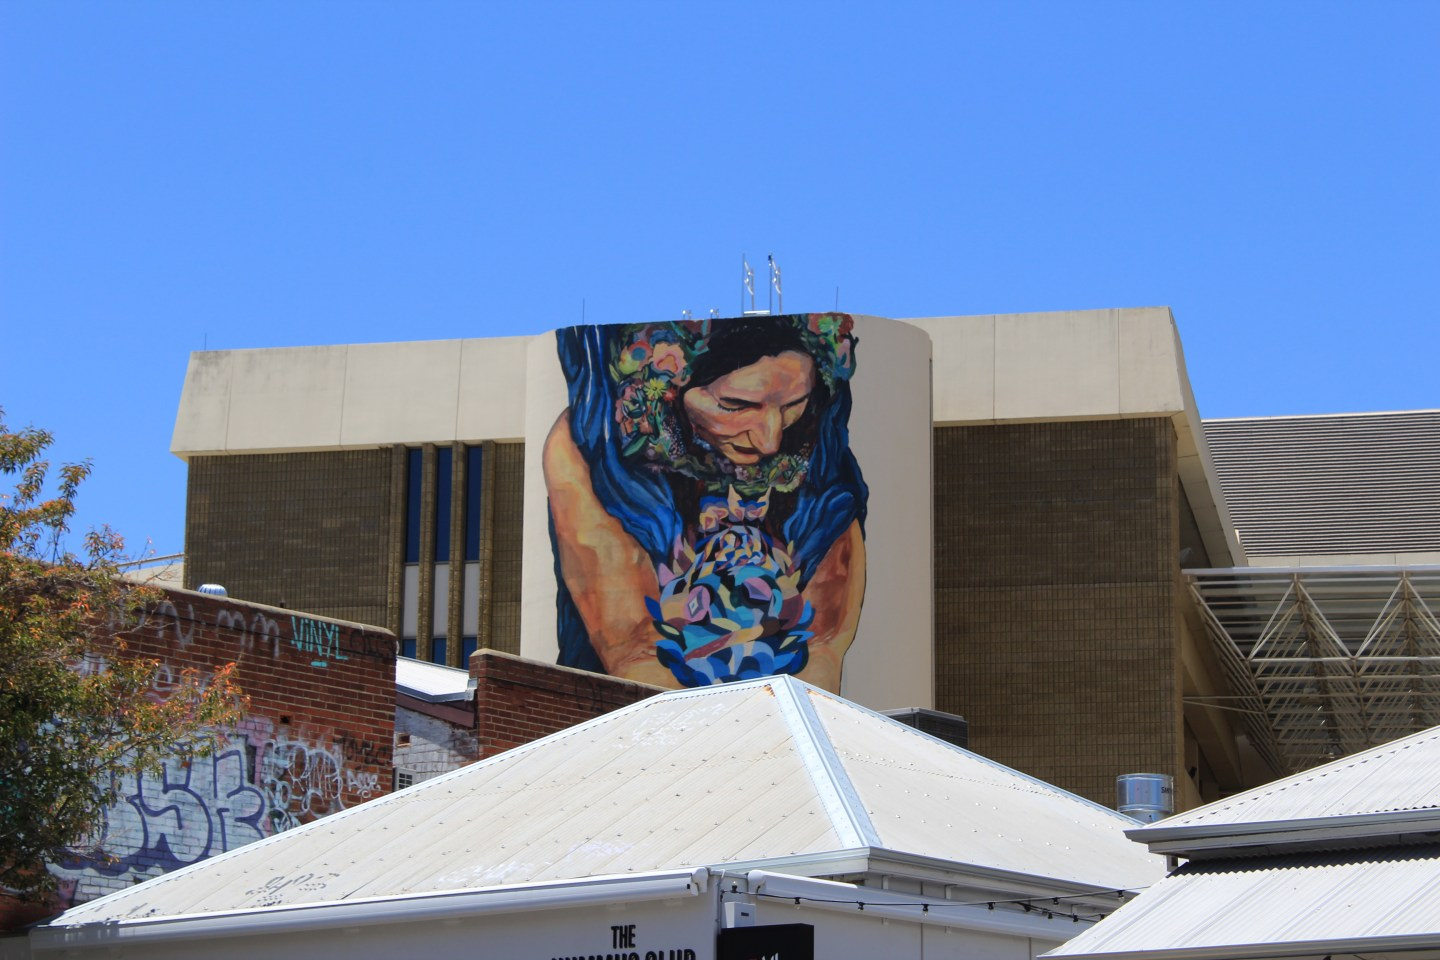 Best things to do in Perth - one day itinerary. Explore the streets and discover unique murals along the way.